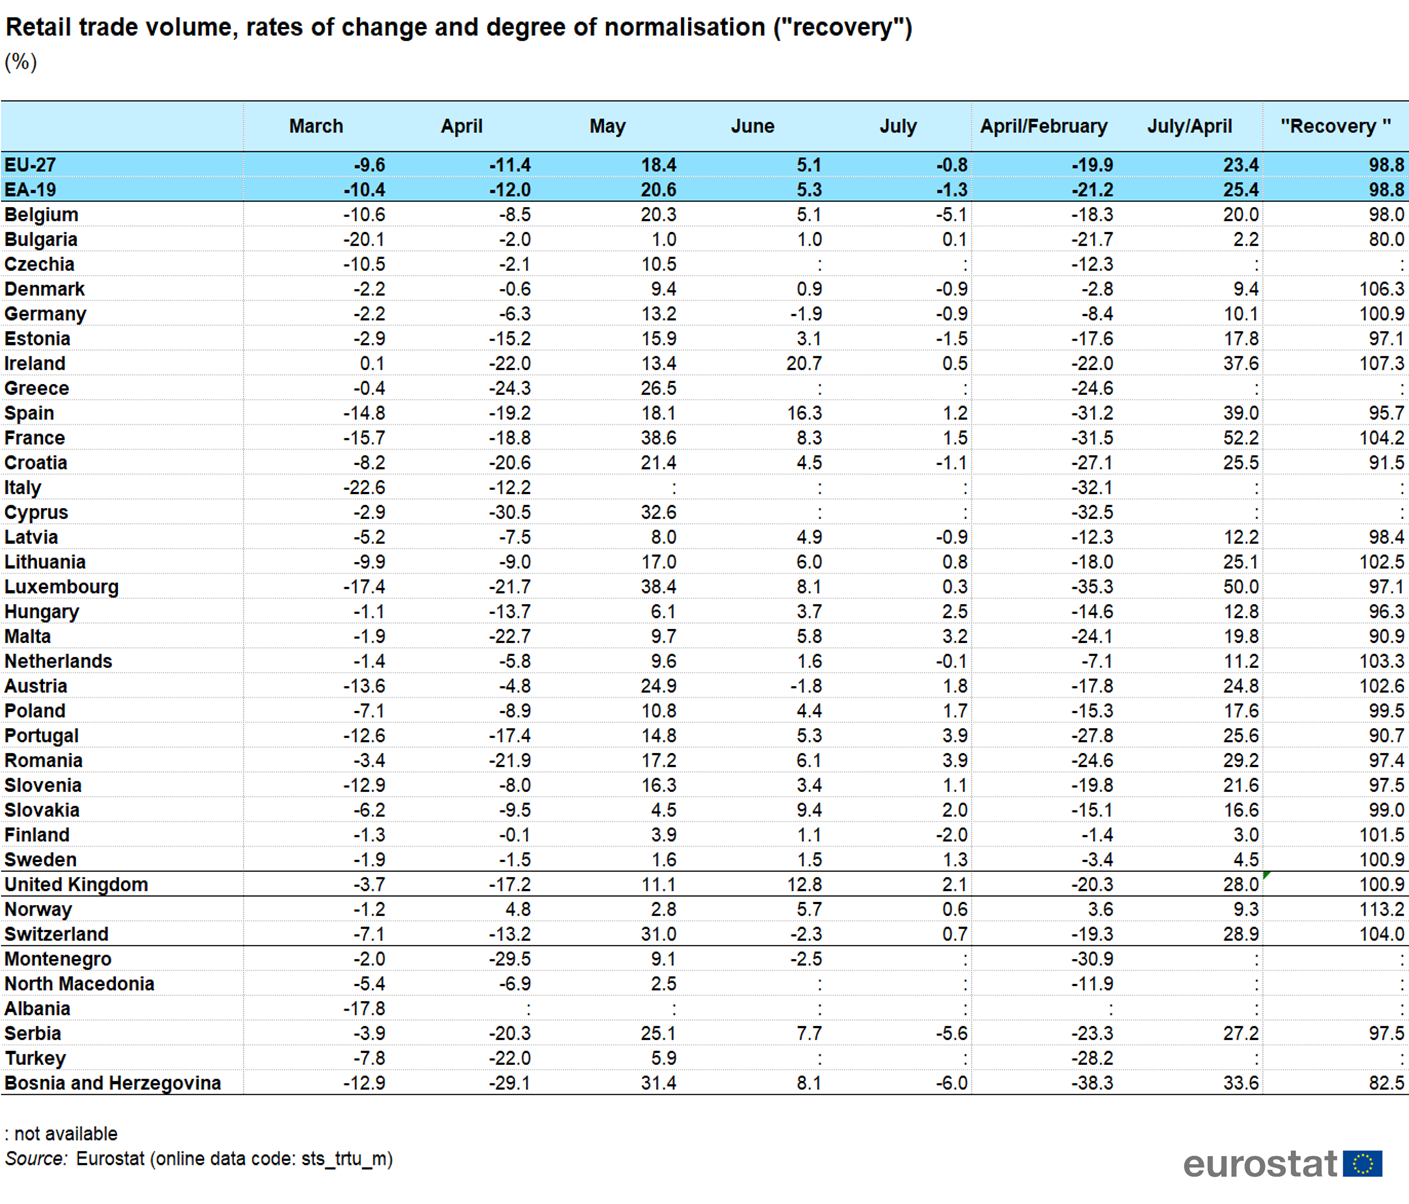 File:Retail trade volume, rates of change and degree of normalisation ( recovery ) (%) - July.png